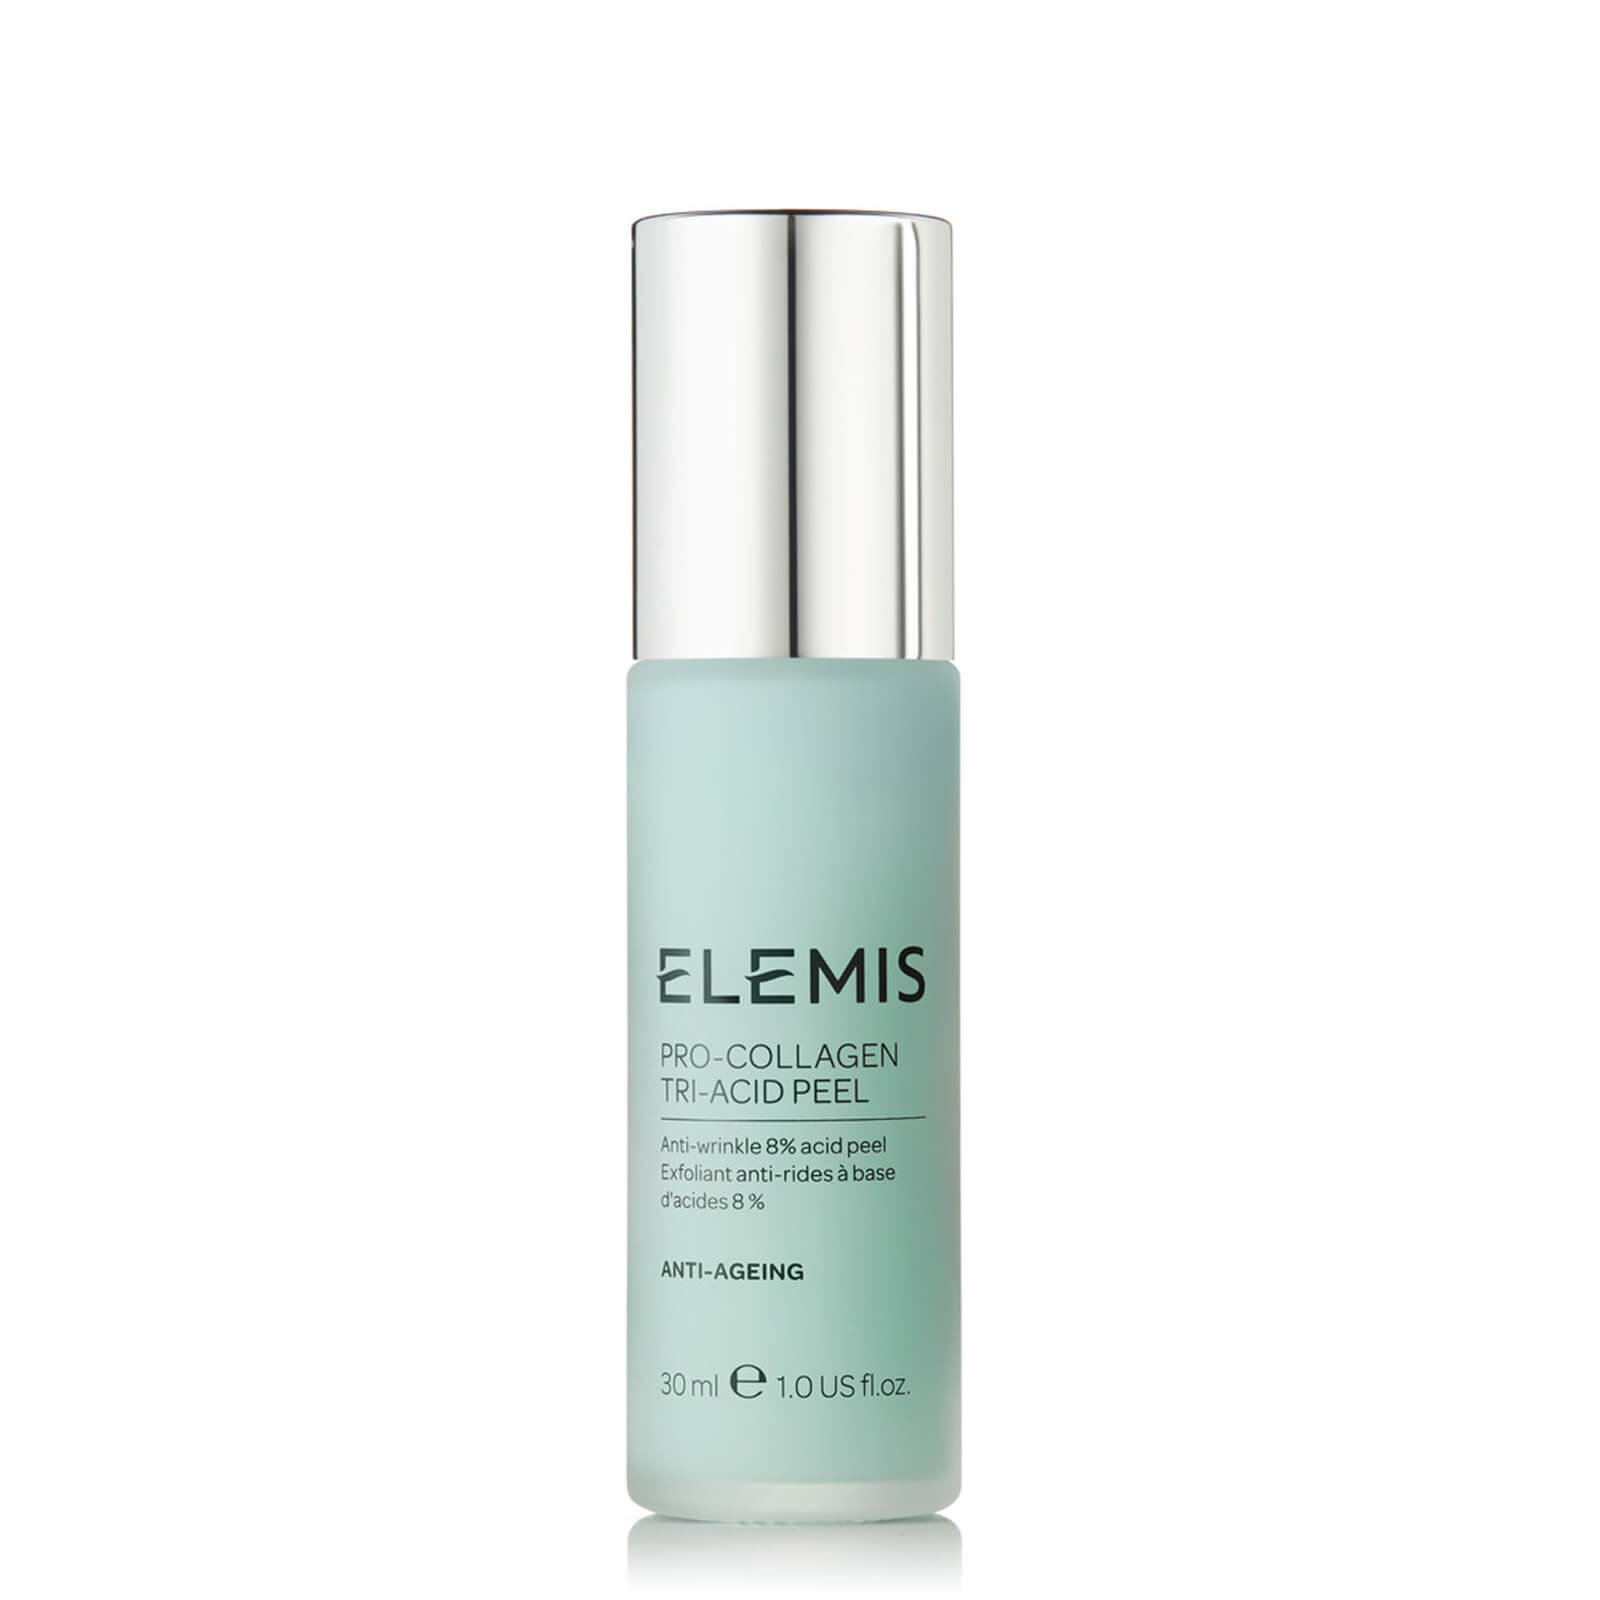 Купить Elemis Pro-Collagen Tri-Acid Peel 30ml